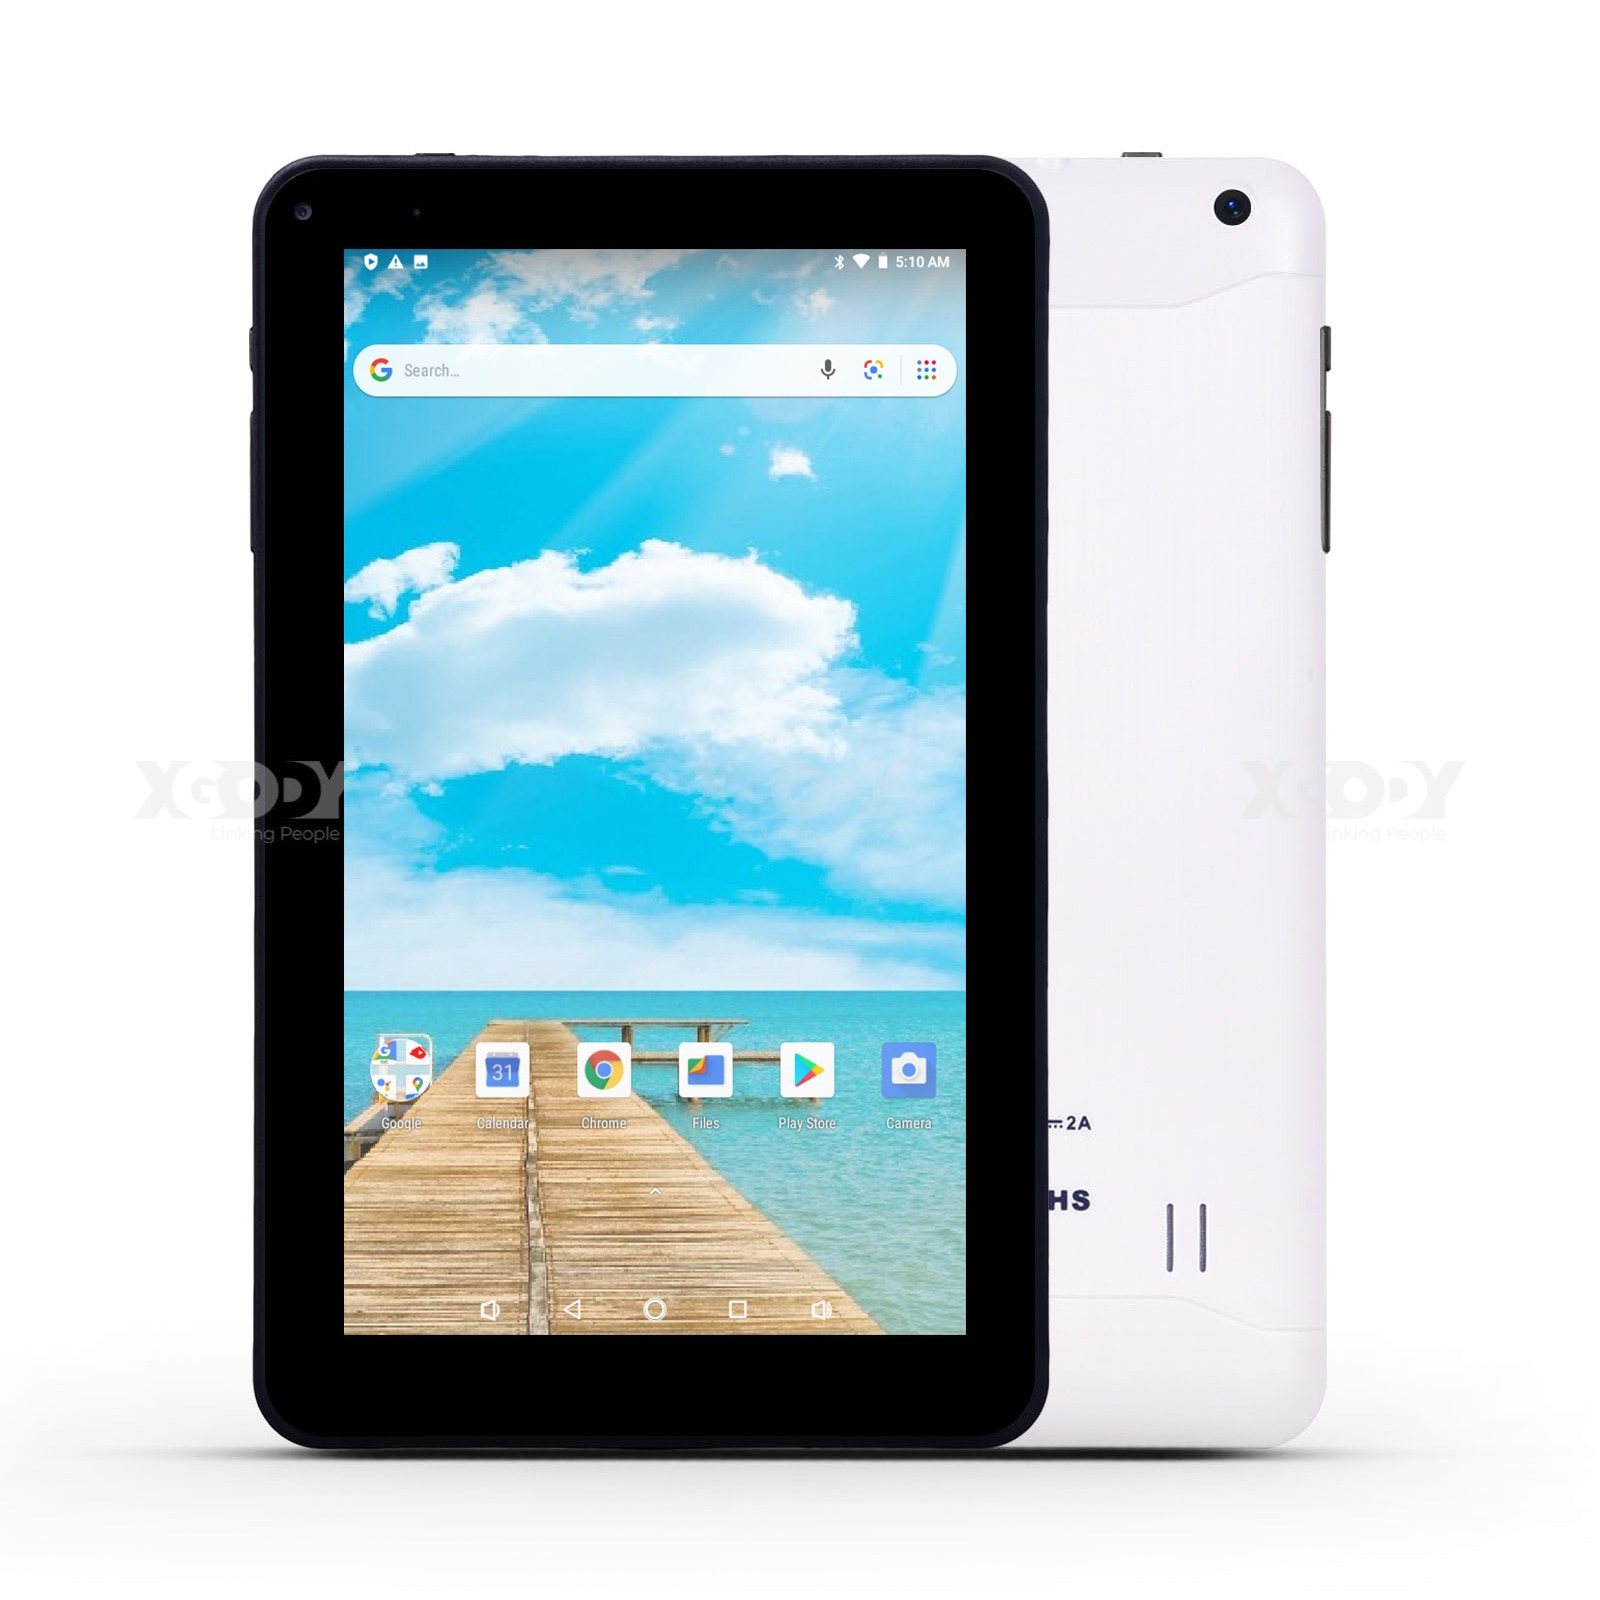 9 Inch Tablet Android10 Dual-mode Parental Control 3GB32GB 4000mAh WiFi Suitable For Children's Learning